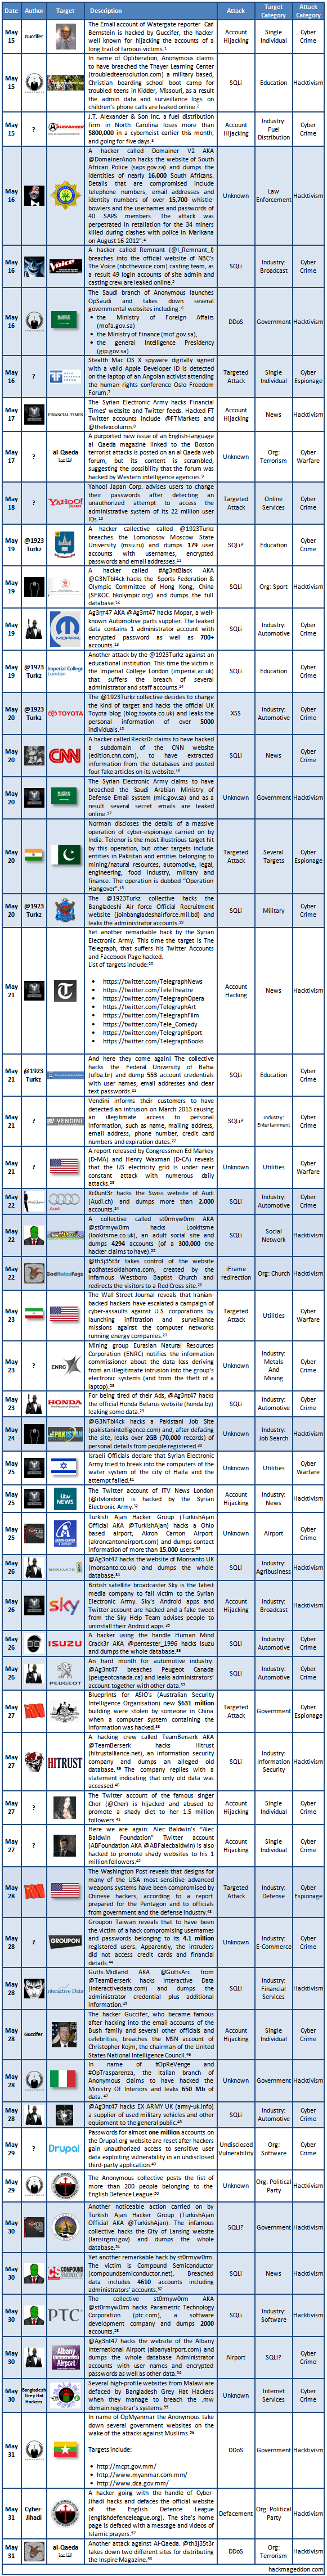 may-2013-cyber-attacks-timeline-part-ii1